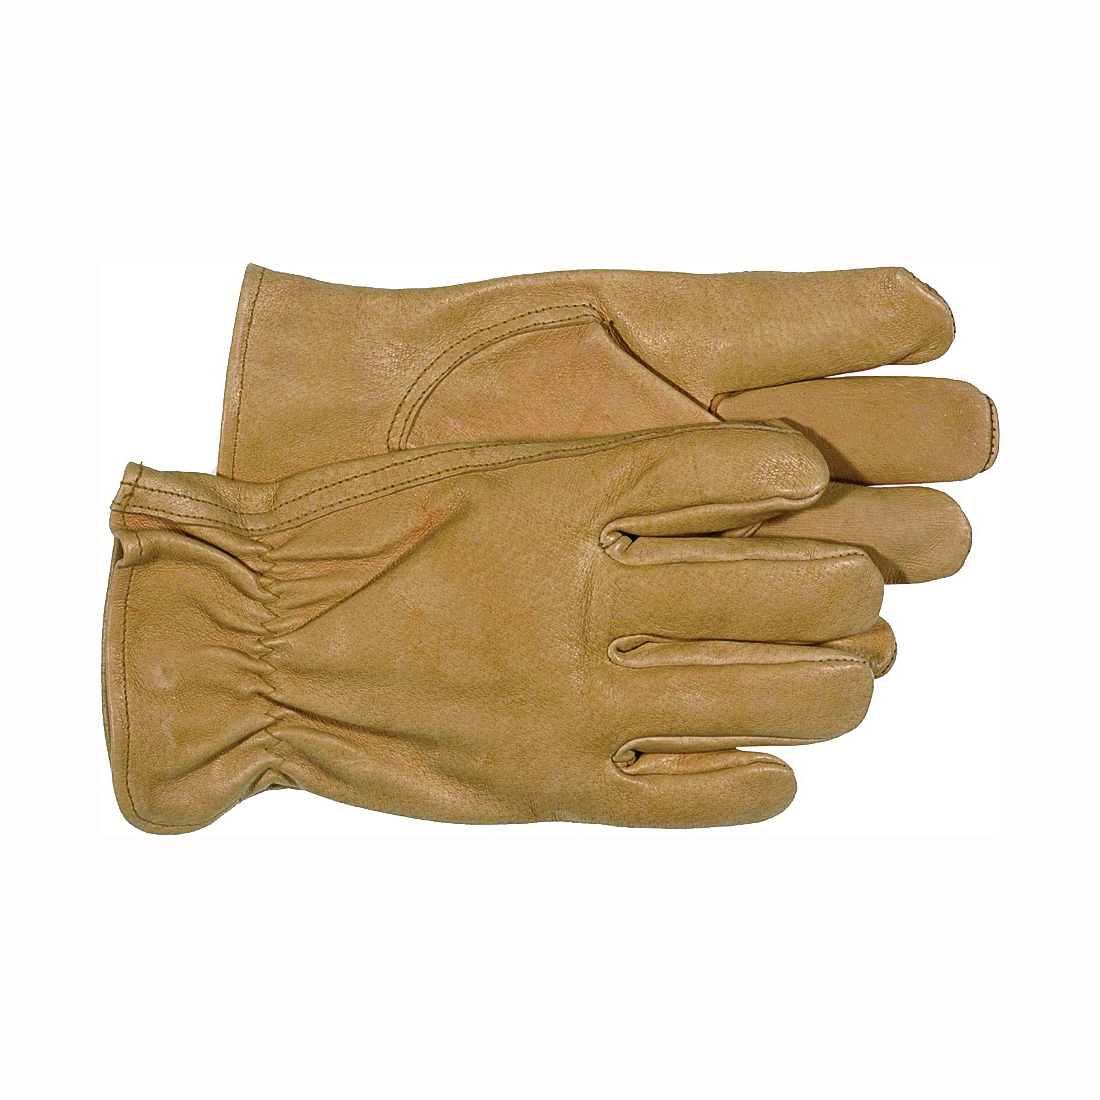 Picture of BOSS 4052L Driver Gloves, Women's, L, Keystone Thumb, Open, Shirred Elastic Back Cuff, Pigskin Leather, Tan